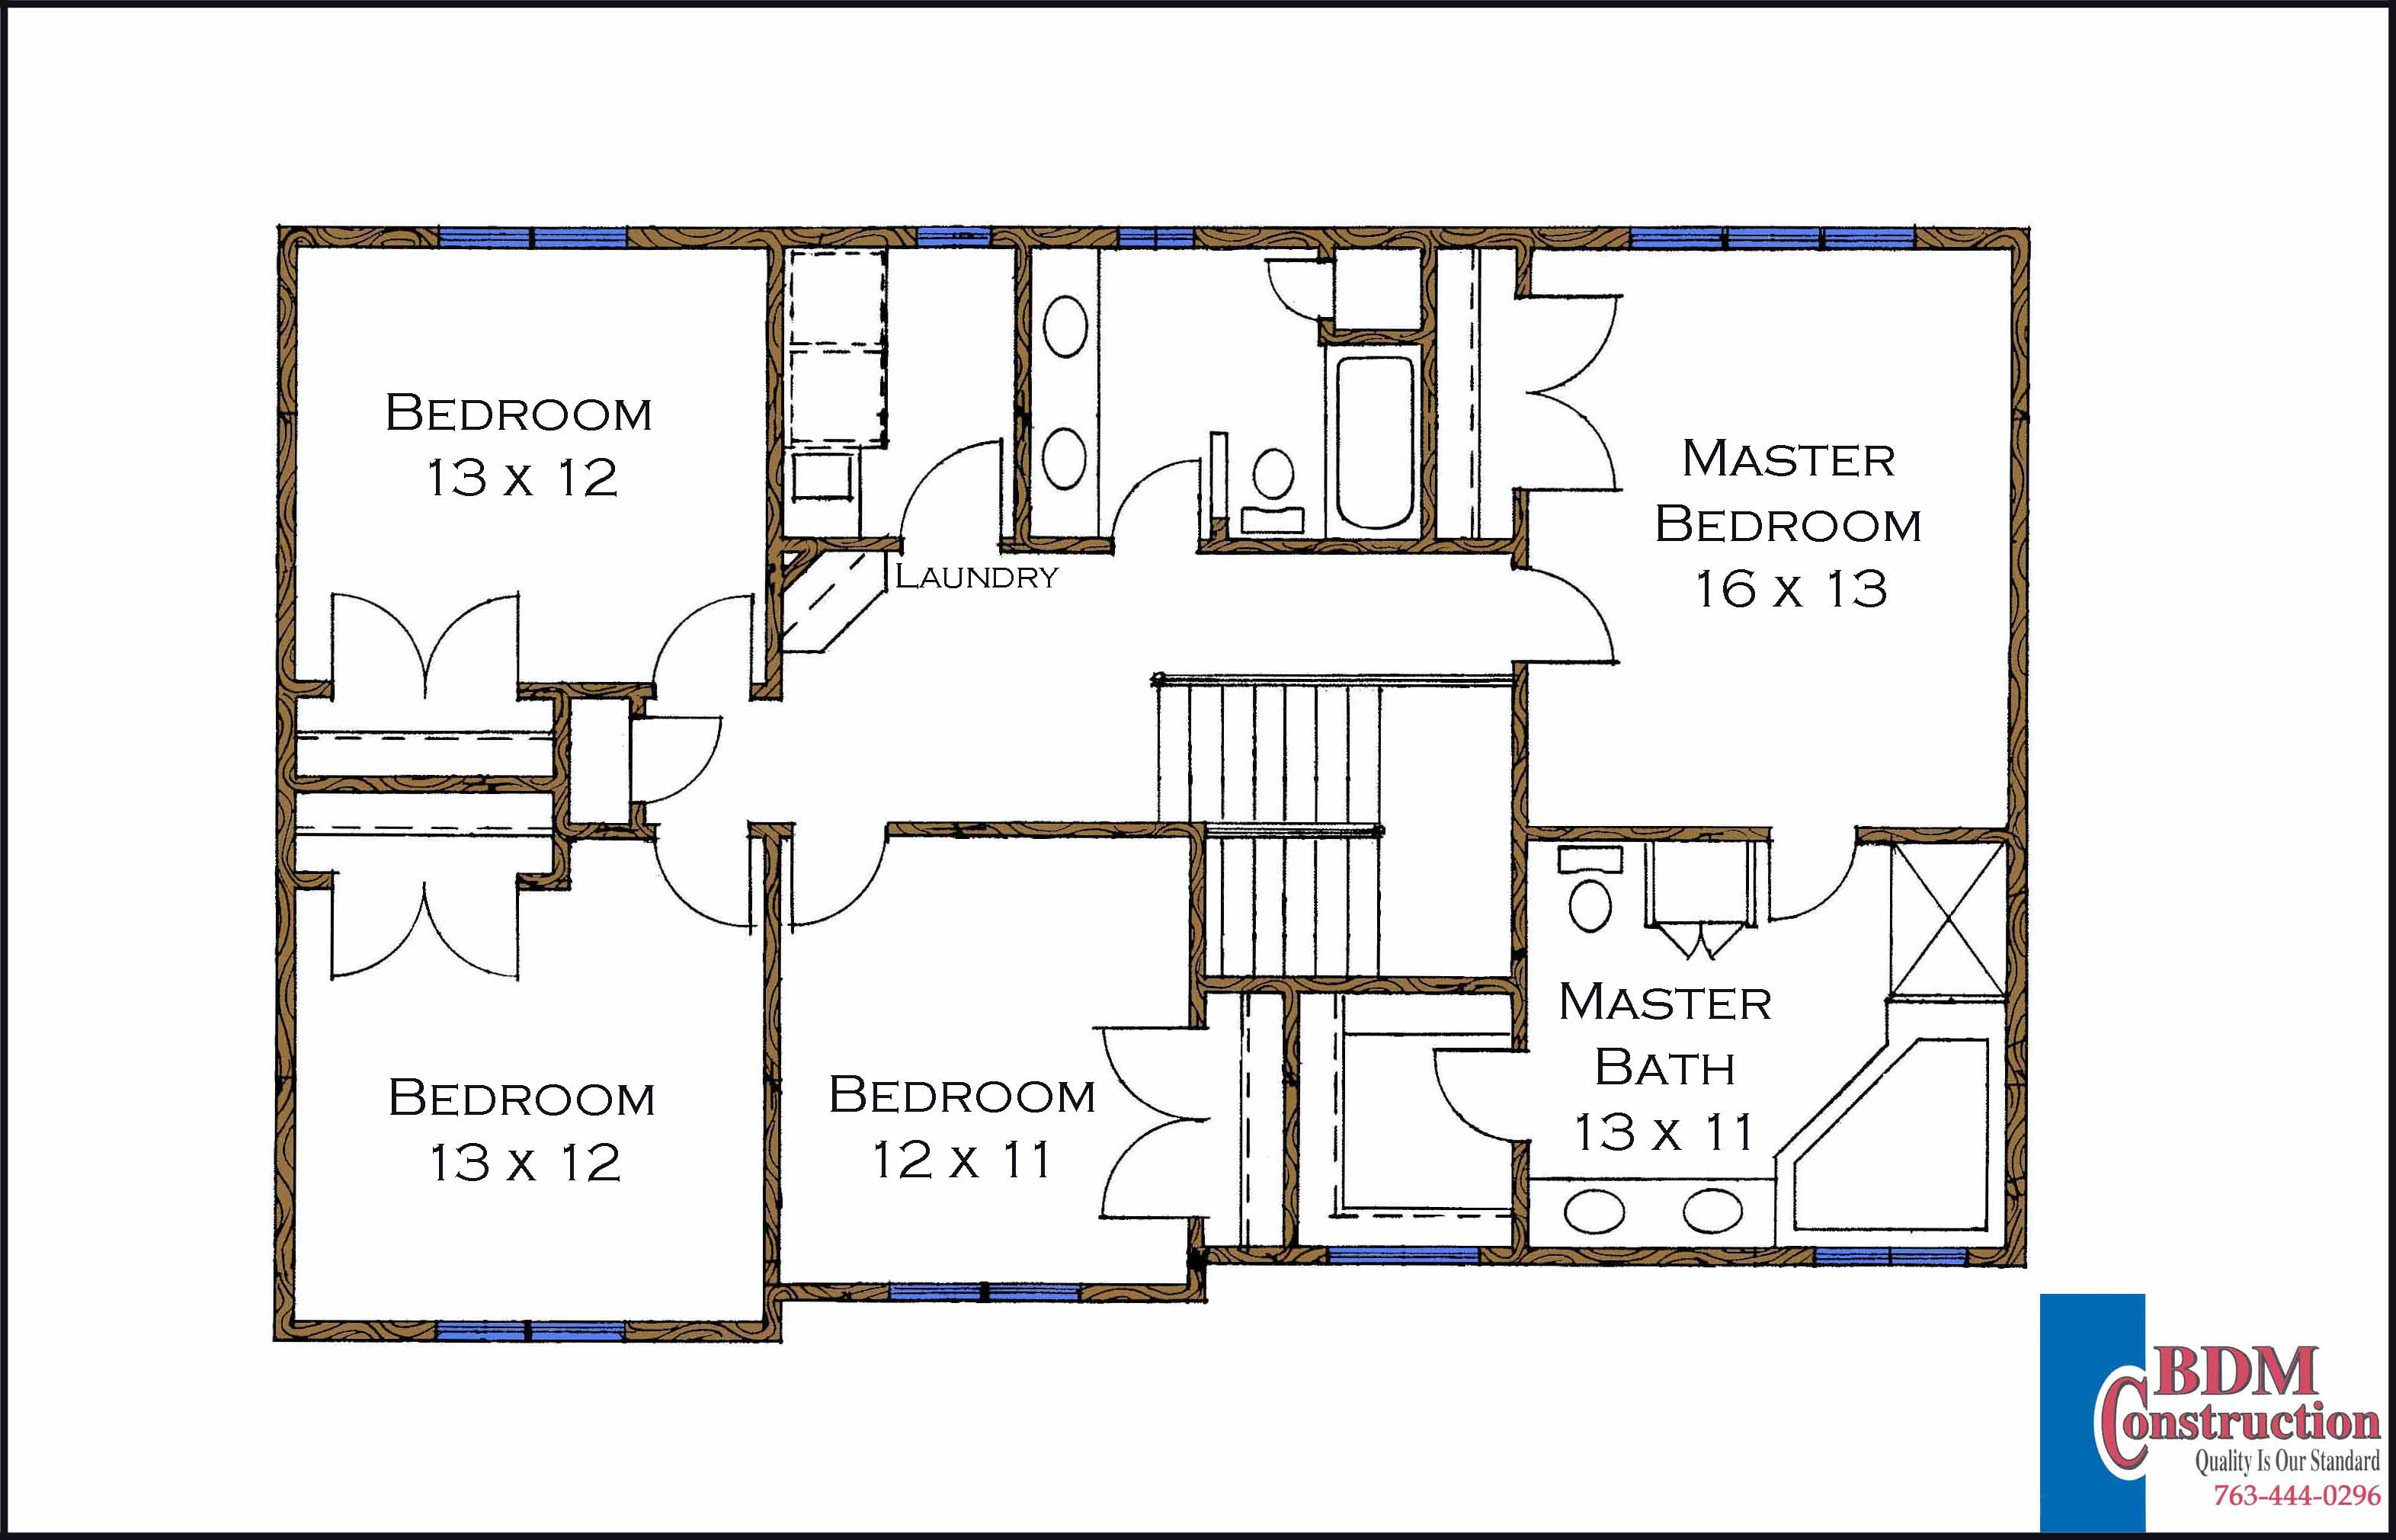 walk in closet floor plans 19 best photo of walk in closet floor plans ideas home plans blueprints 266